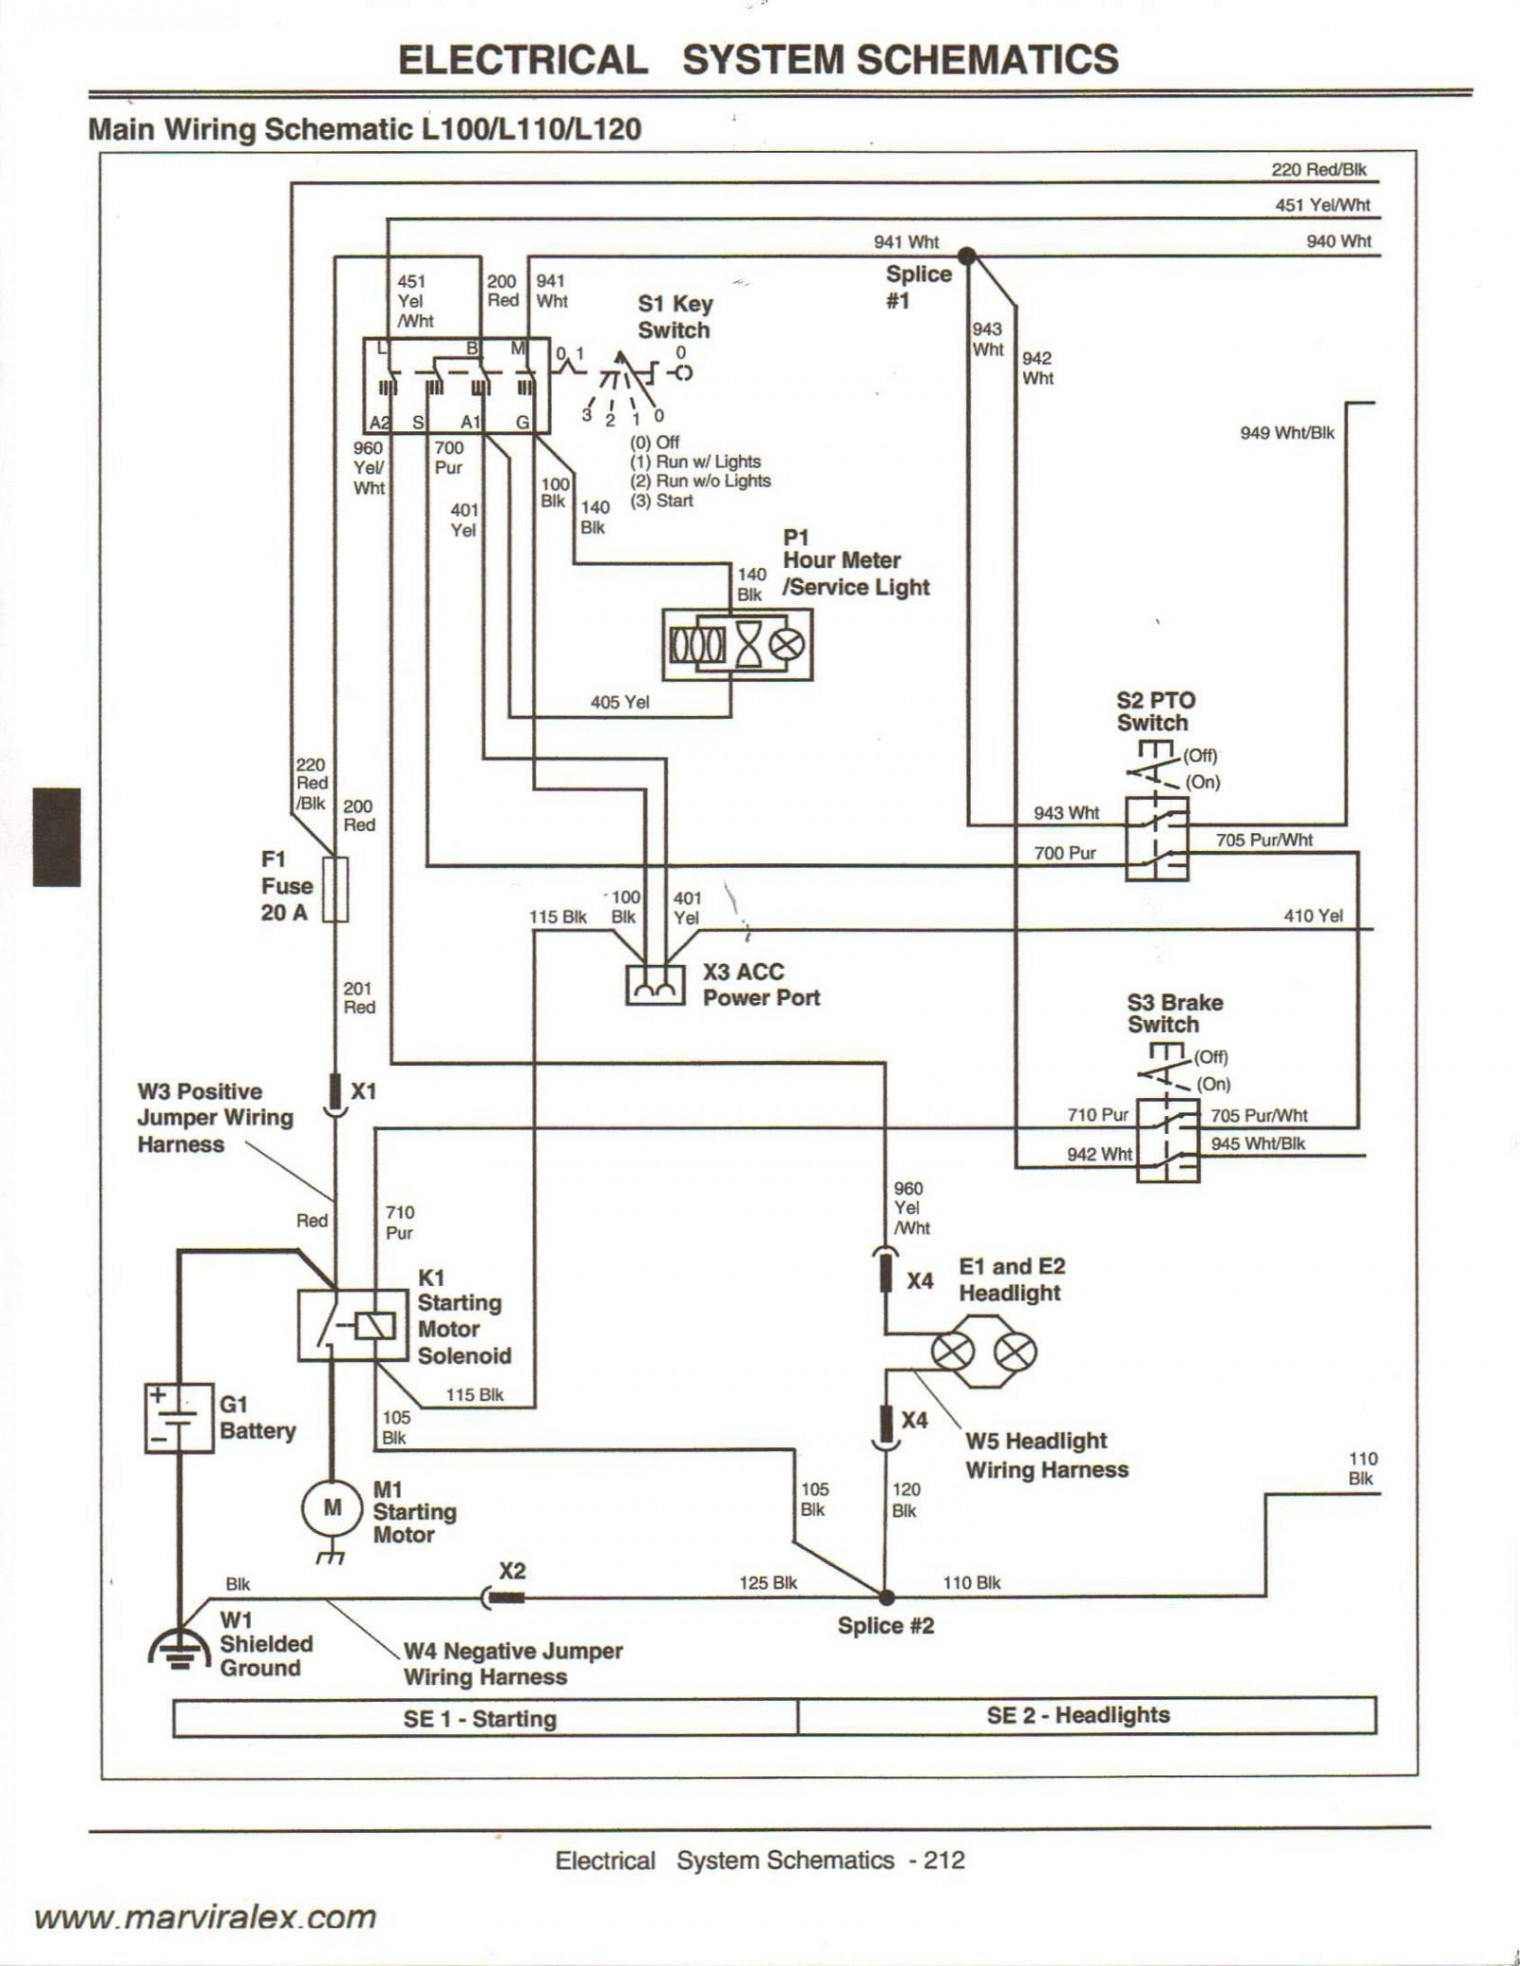 96701 L130 Wiring Schematic | Digital Resources on jd 4230 tractor, mf 165 wiring diagram, ih super a wiring diagram, ford 3000 wiring diagram,